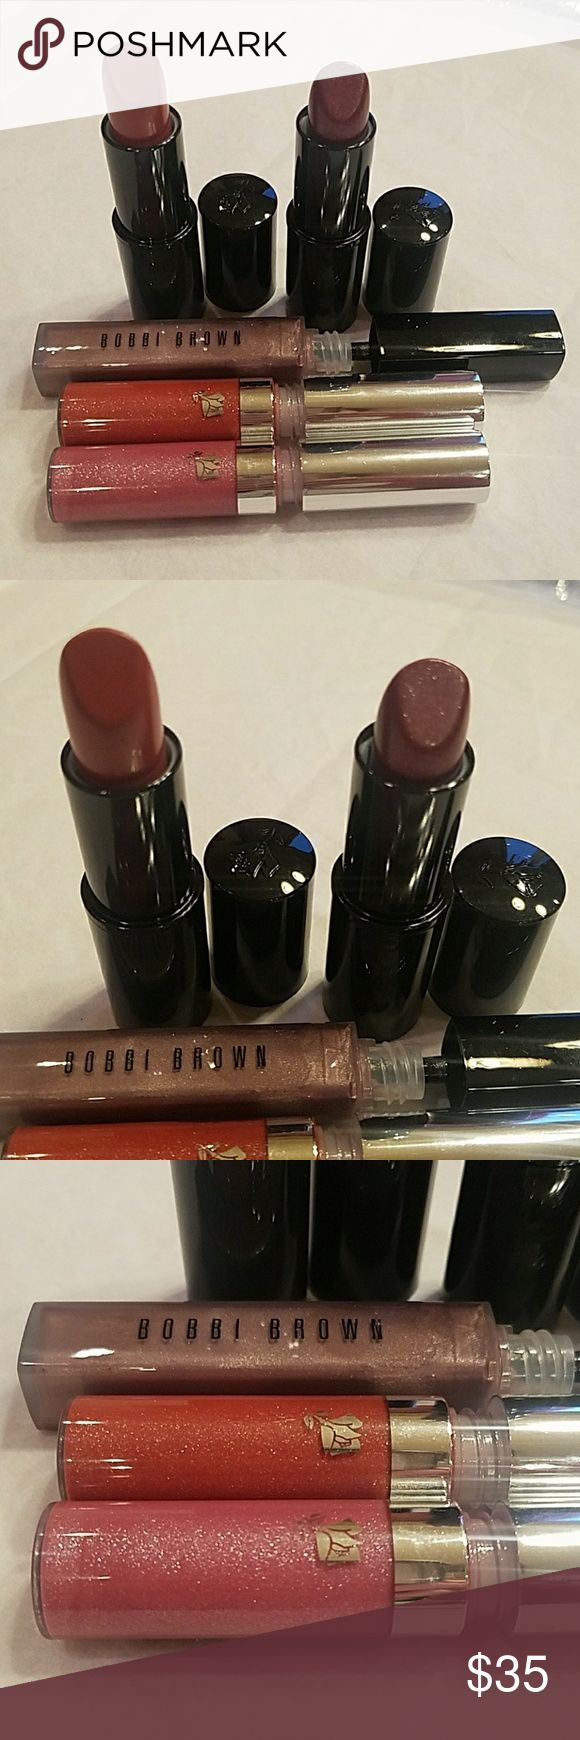 X5 lippies BUNDLE (new) Color design in sugared Maple and fashion icon Lancome Lip gloss in 351 Lilly en lame Lancome Lip gloss in 272 gem 'n' glam Bobbi Brown lip gloss in Black Pearl 49 All new and AUTHENTIC Selling as is! ASK QUESTIONS BEFORE purchasing! Makeup Lip Balm & Gloss